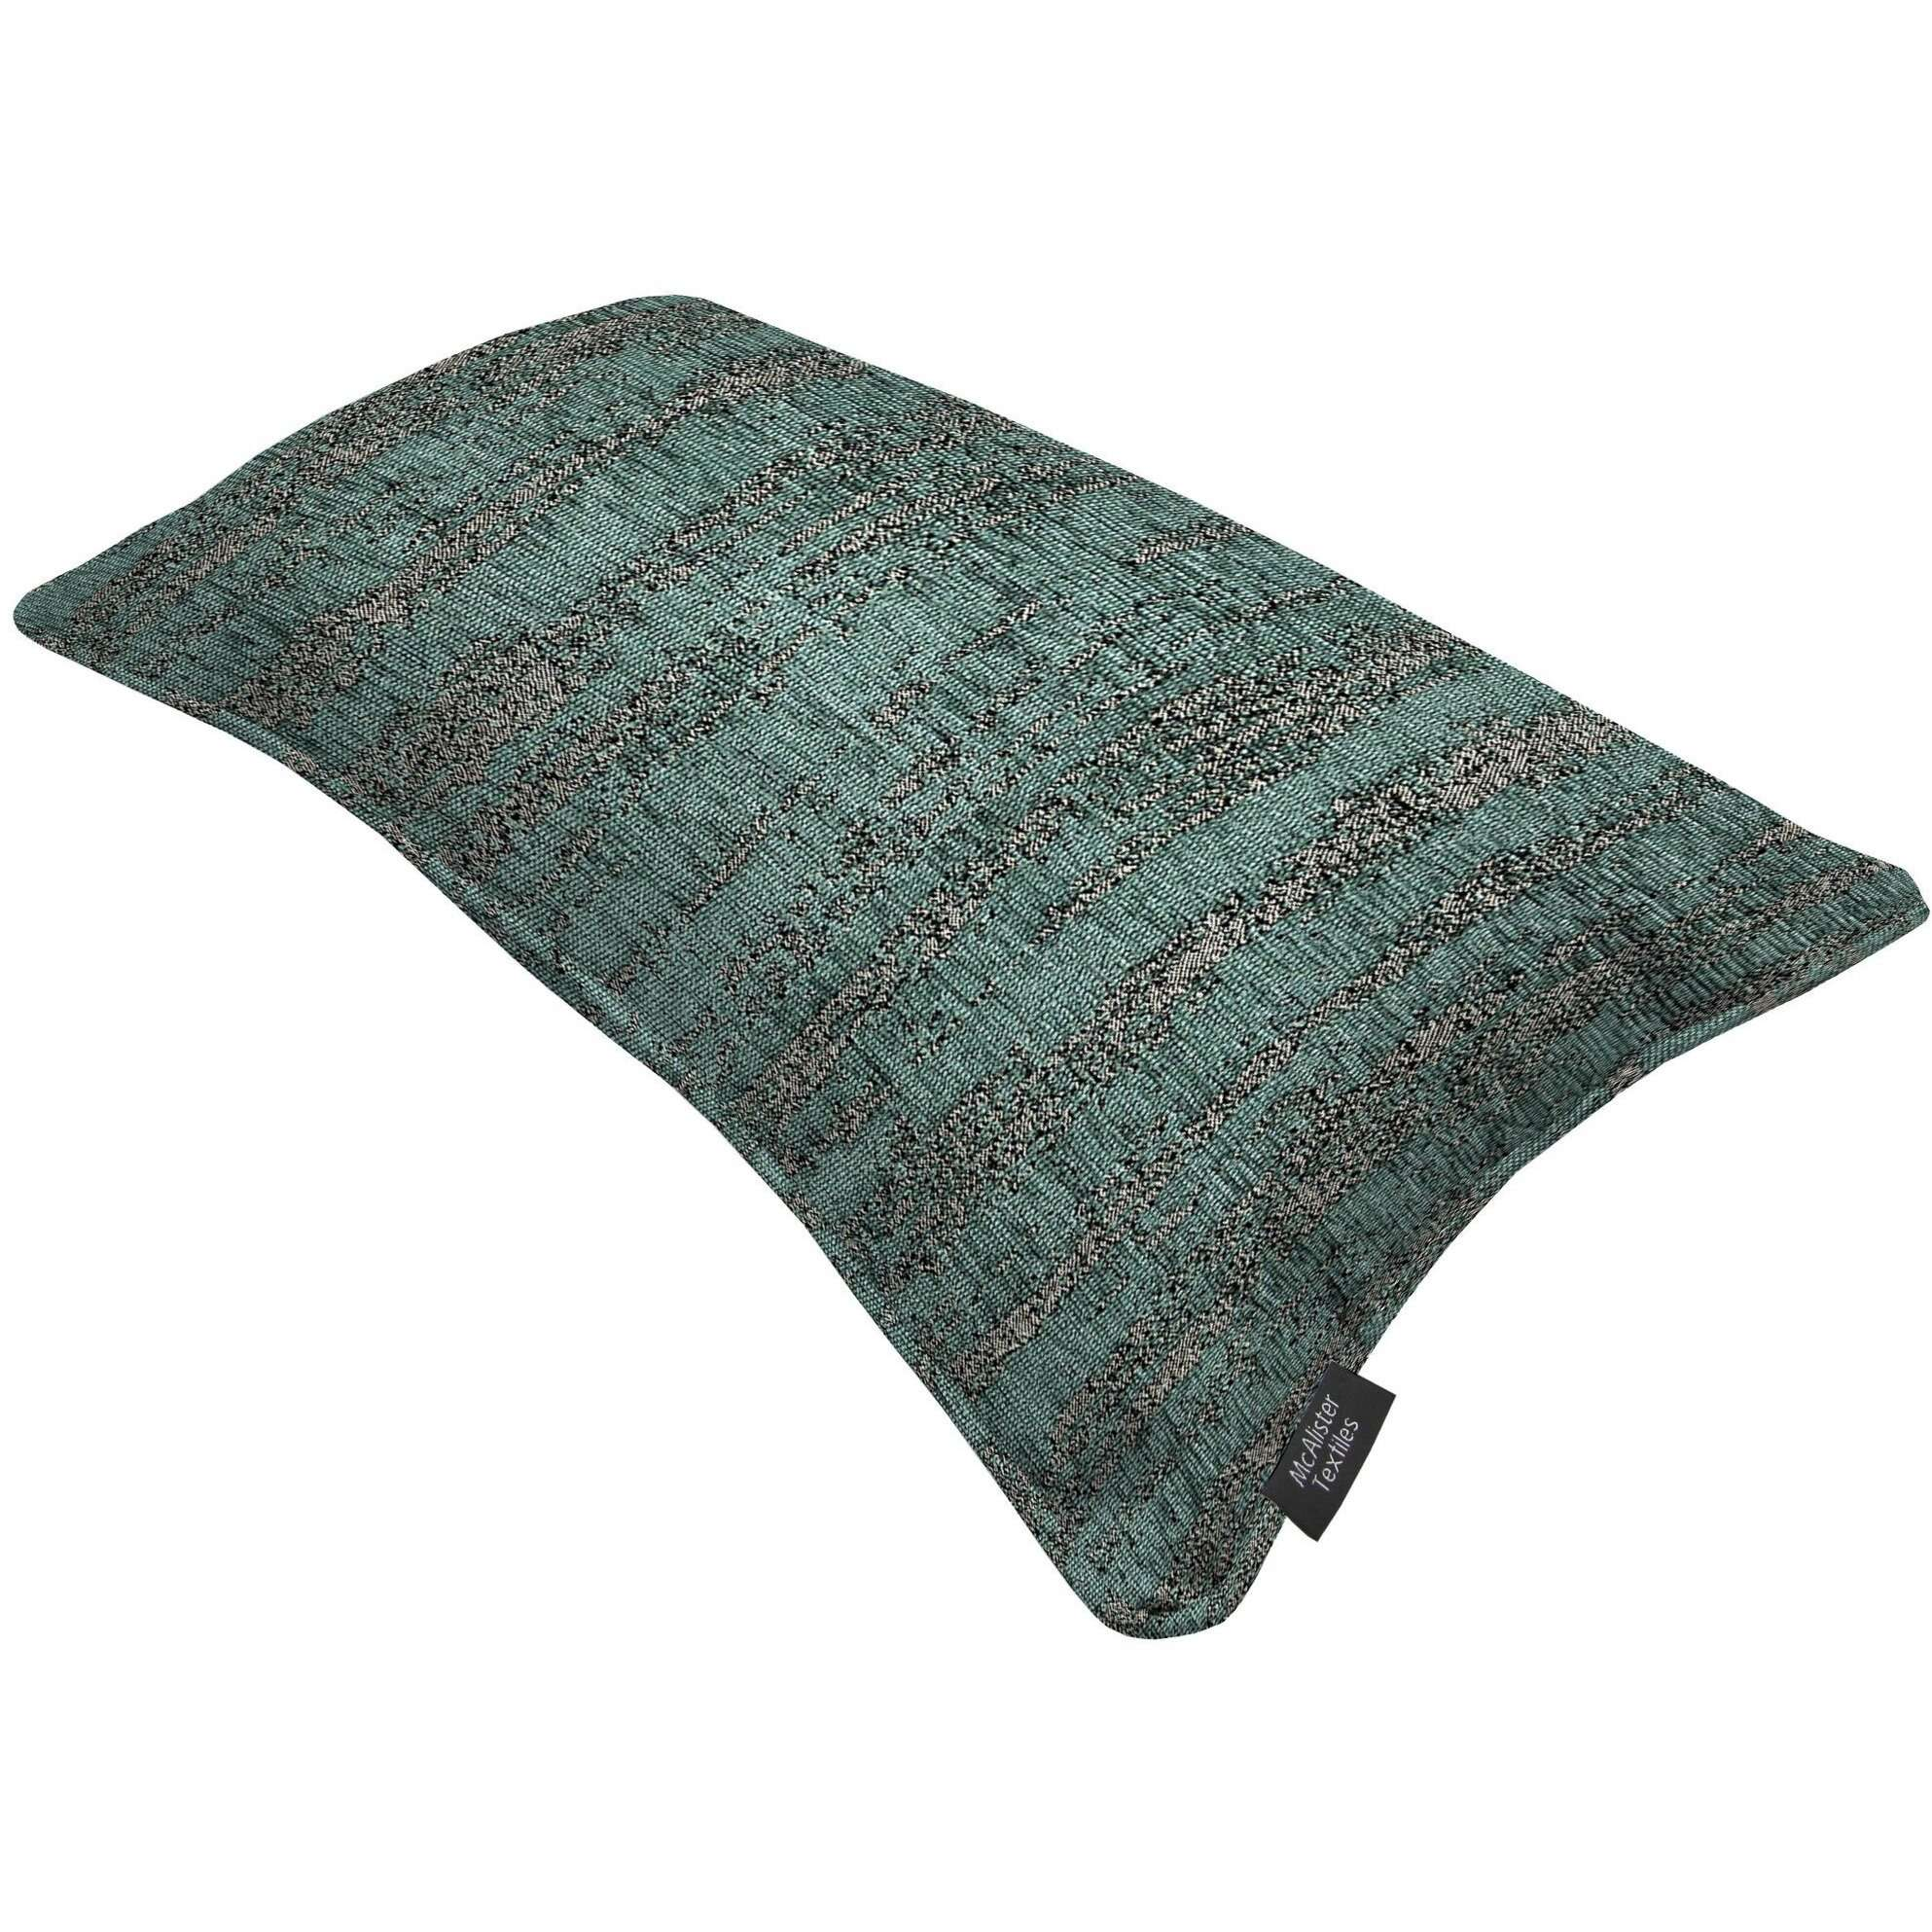 McAlister Textiles Textured Chenille Teal Cushion Cushions and Covers